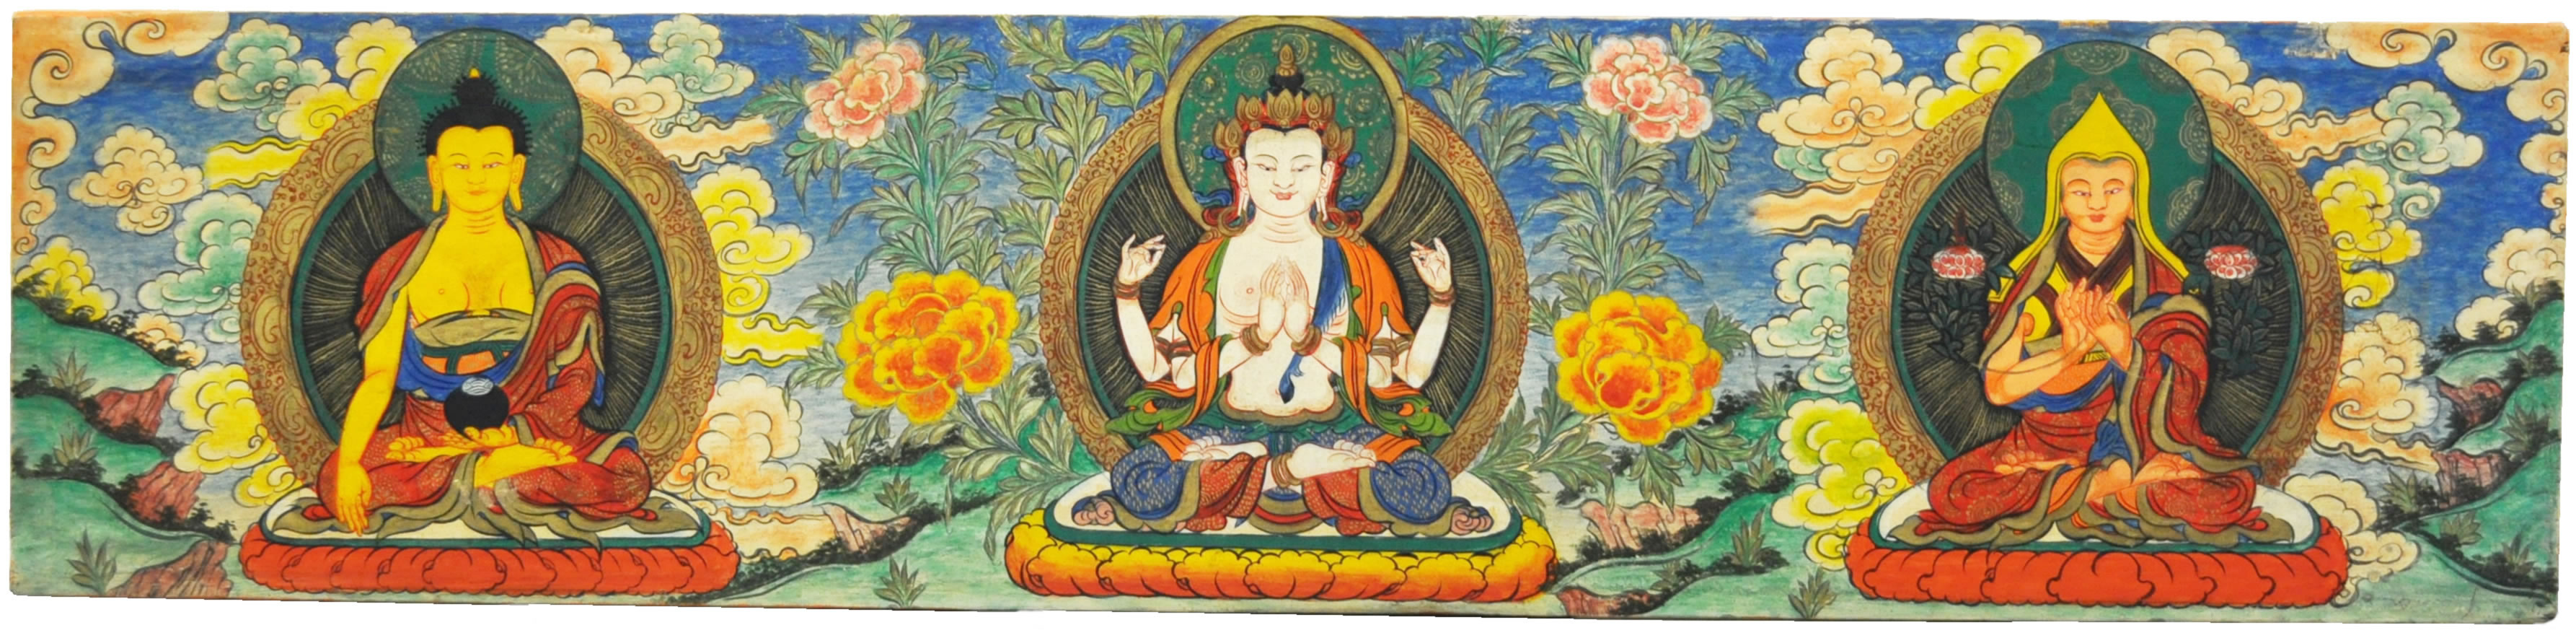 a comparison of the similarities and differences in the death ritual of the buddhists of tibet and t Buddhism and hinduism: the similarities and differences buddhists do not usually share that view buddha taught that the original vedas (ancient religious texts).